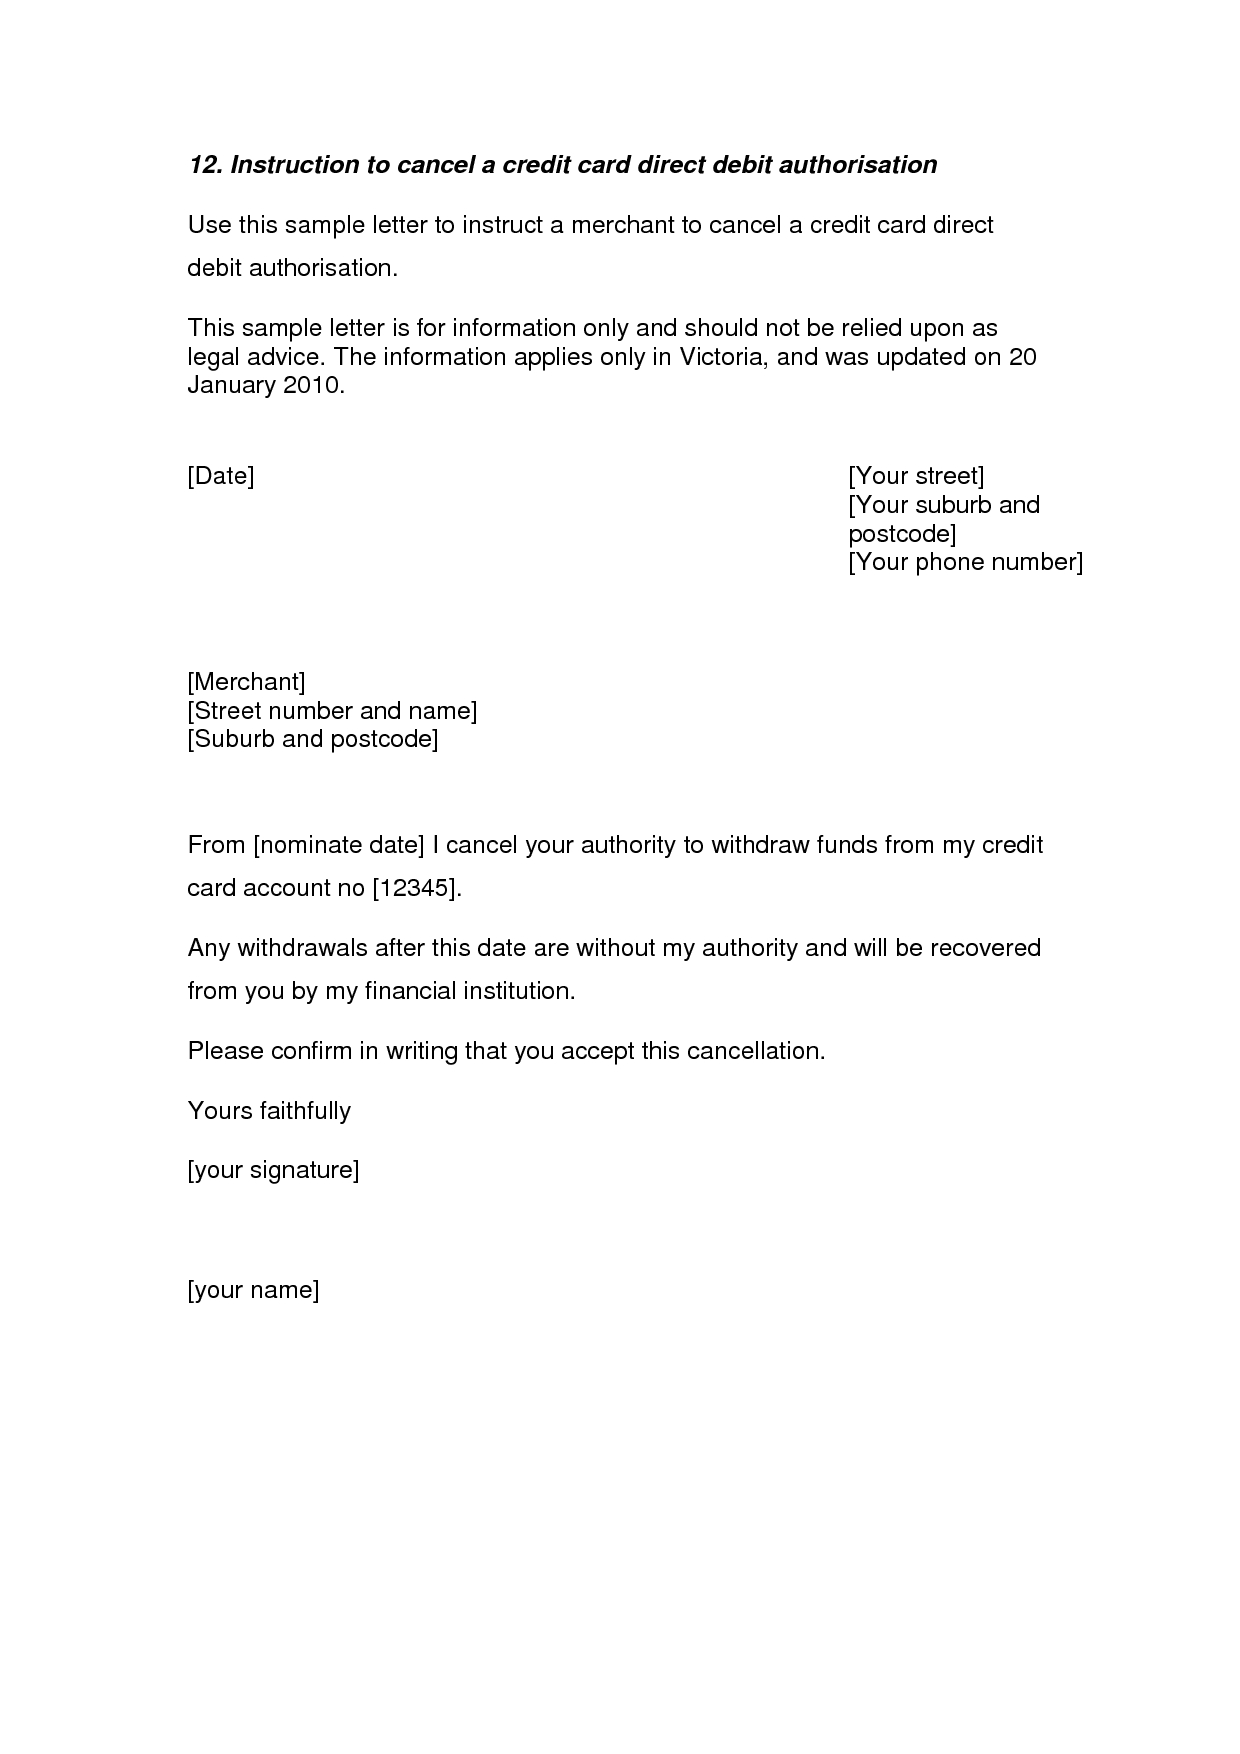 Patient Missed Appointment Letter Template - Credit Card Cancellation Letter A Credit Card Cancellation Letter